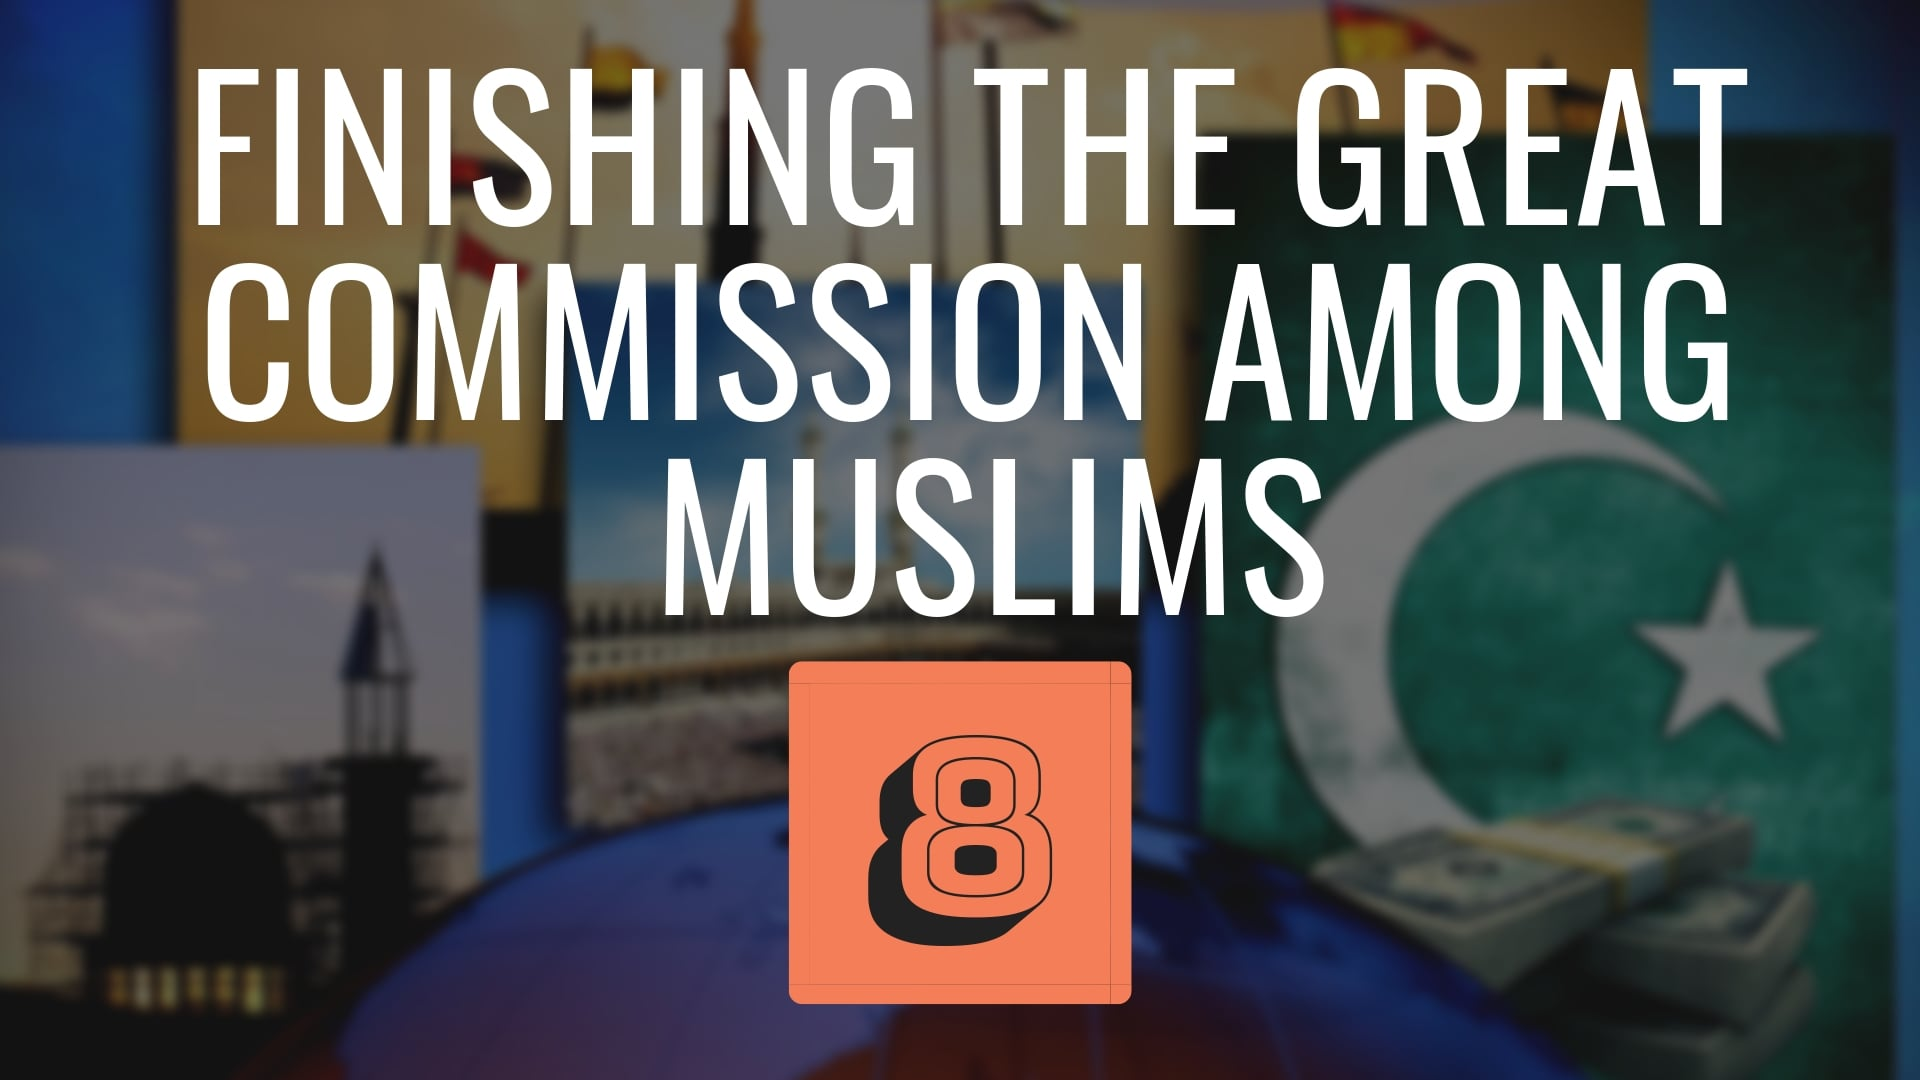 Finishing The Great Commission Among Muslims